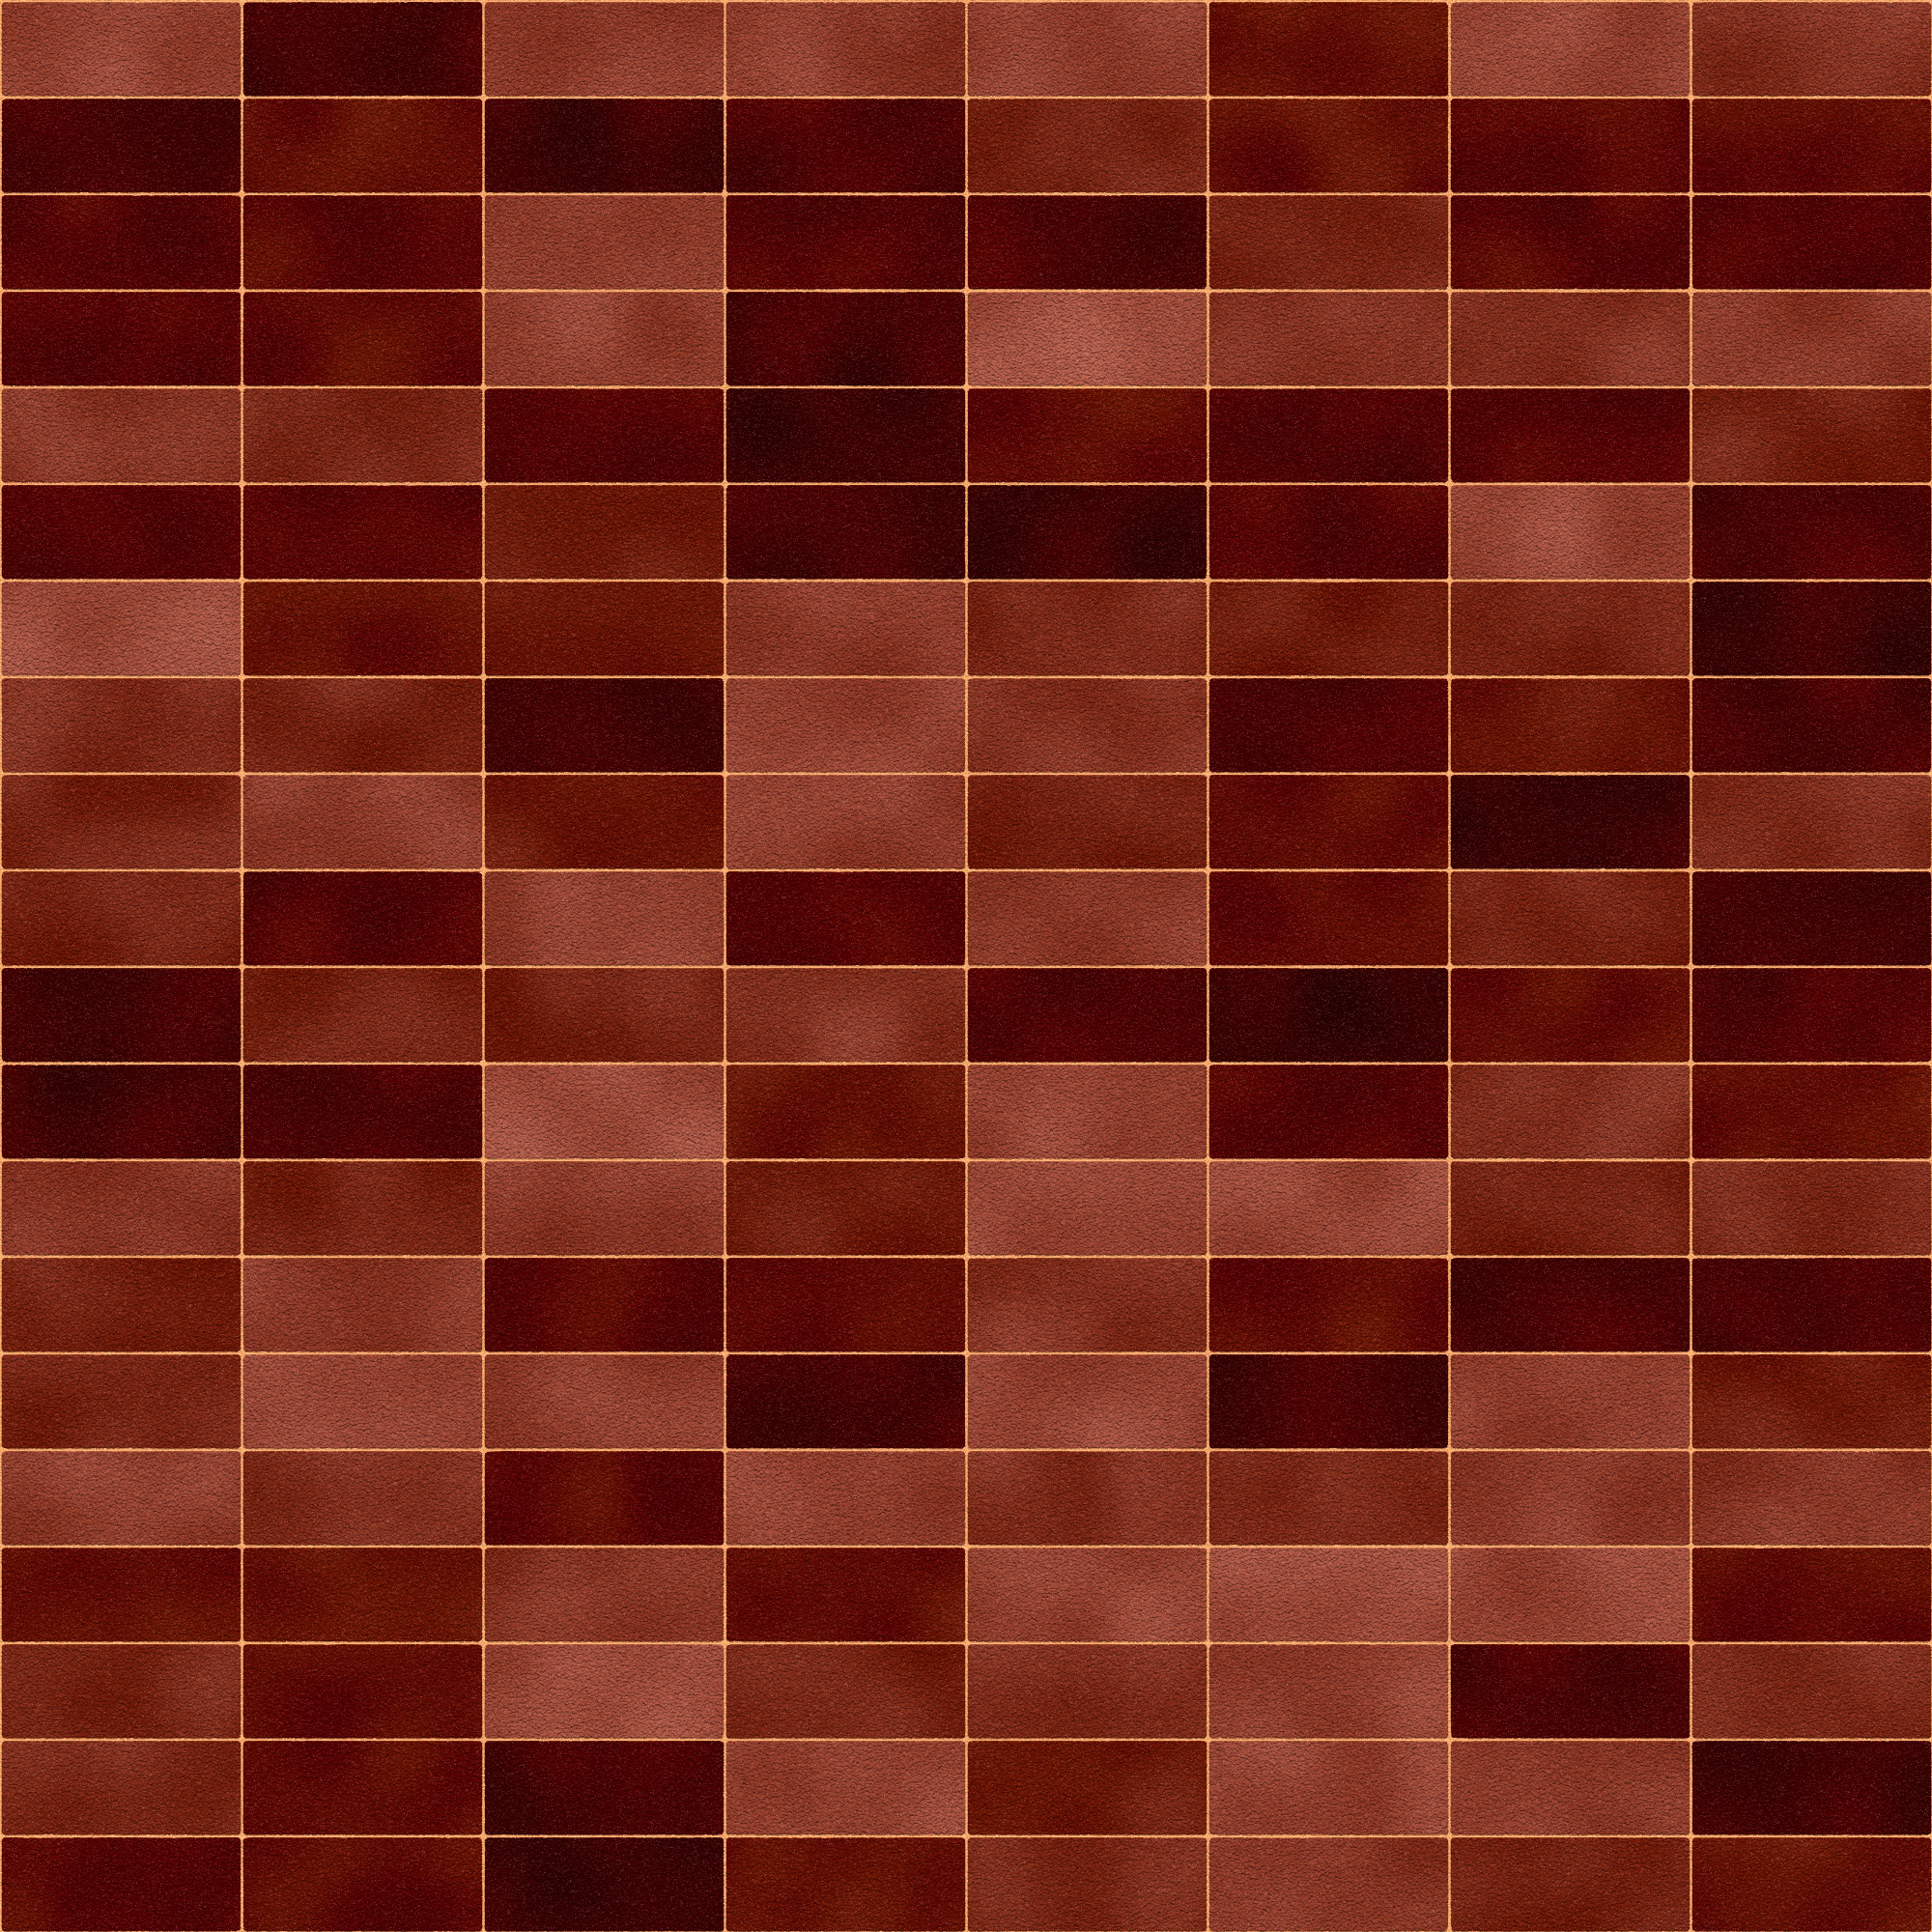 red brick wall texture, red brick wall, download photo, background, texture